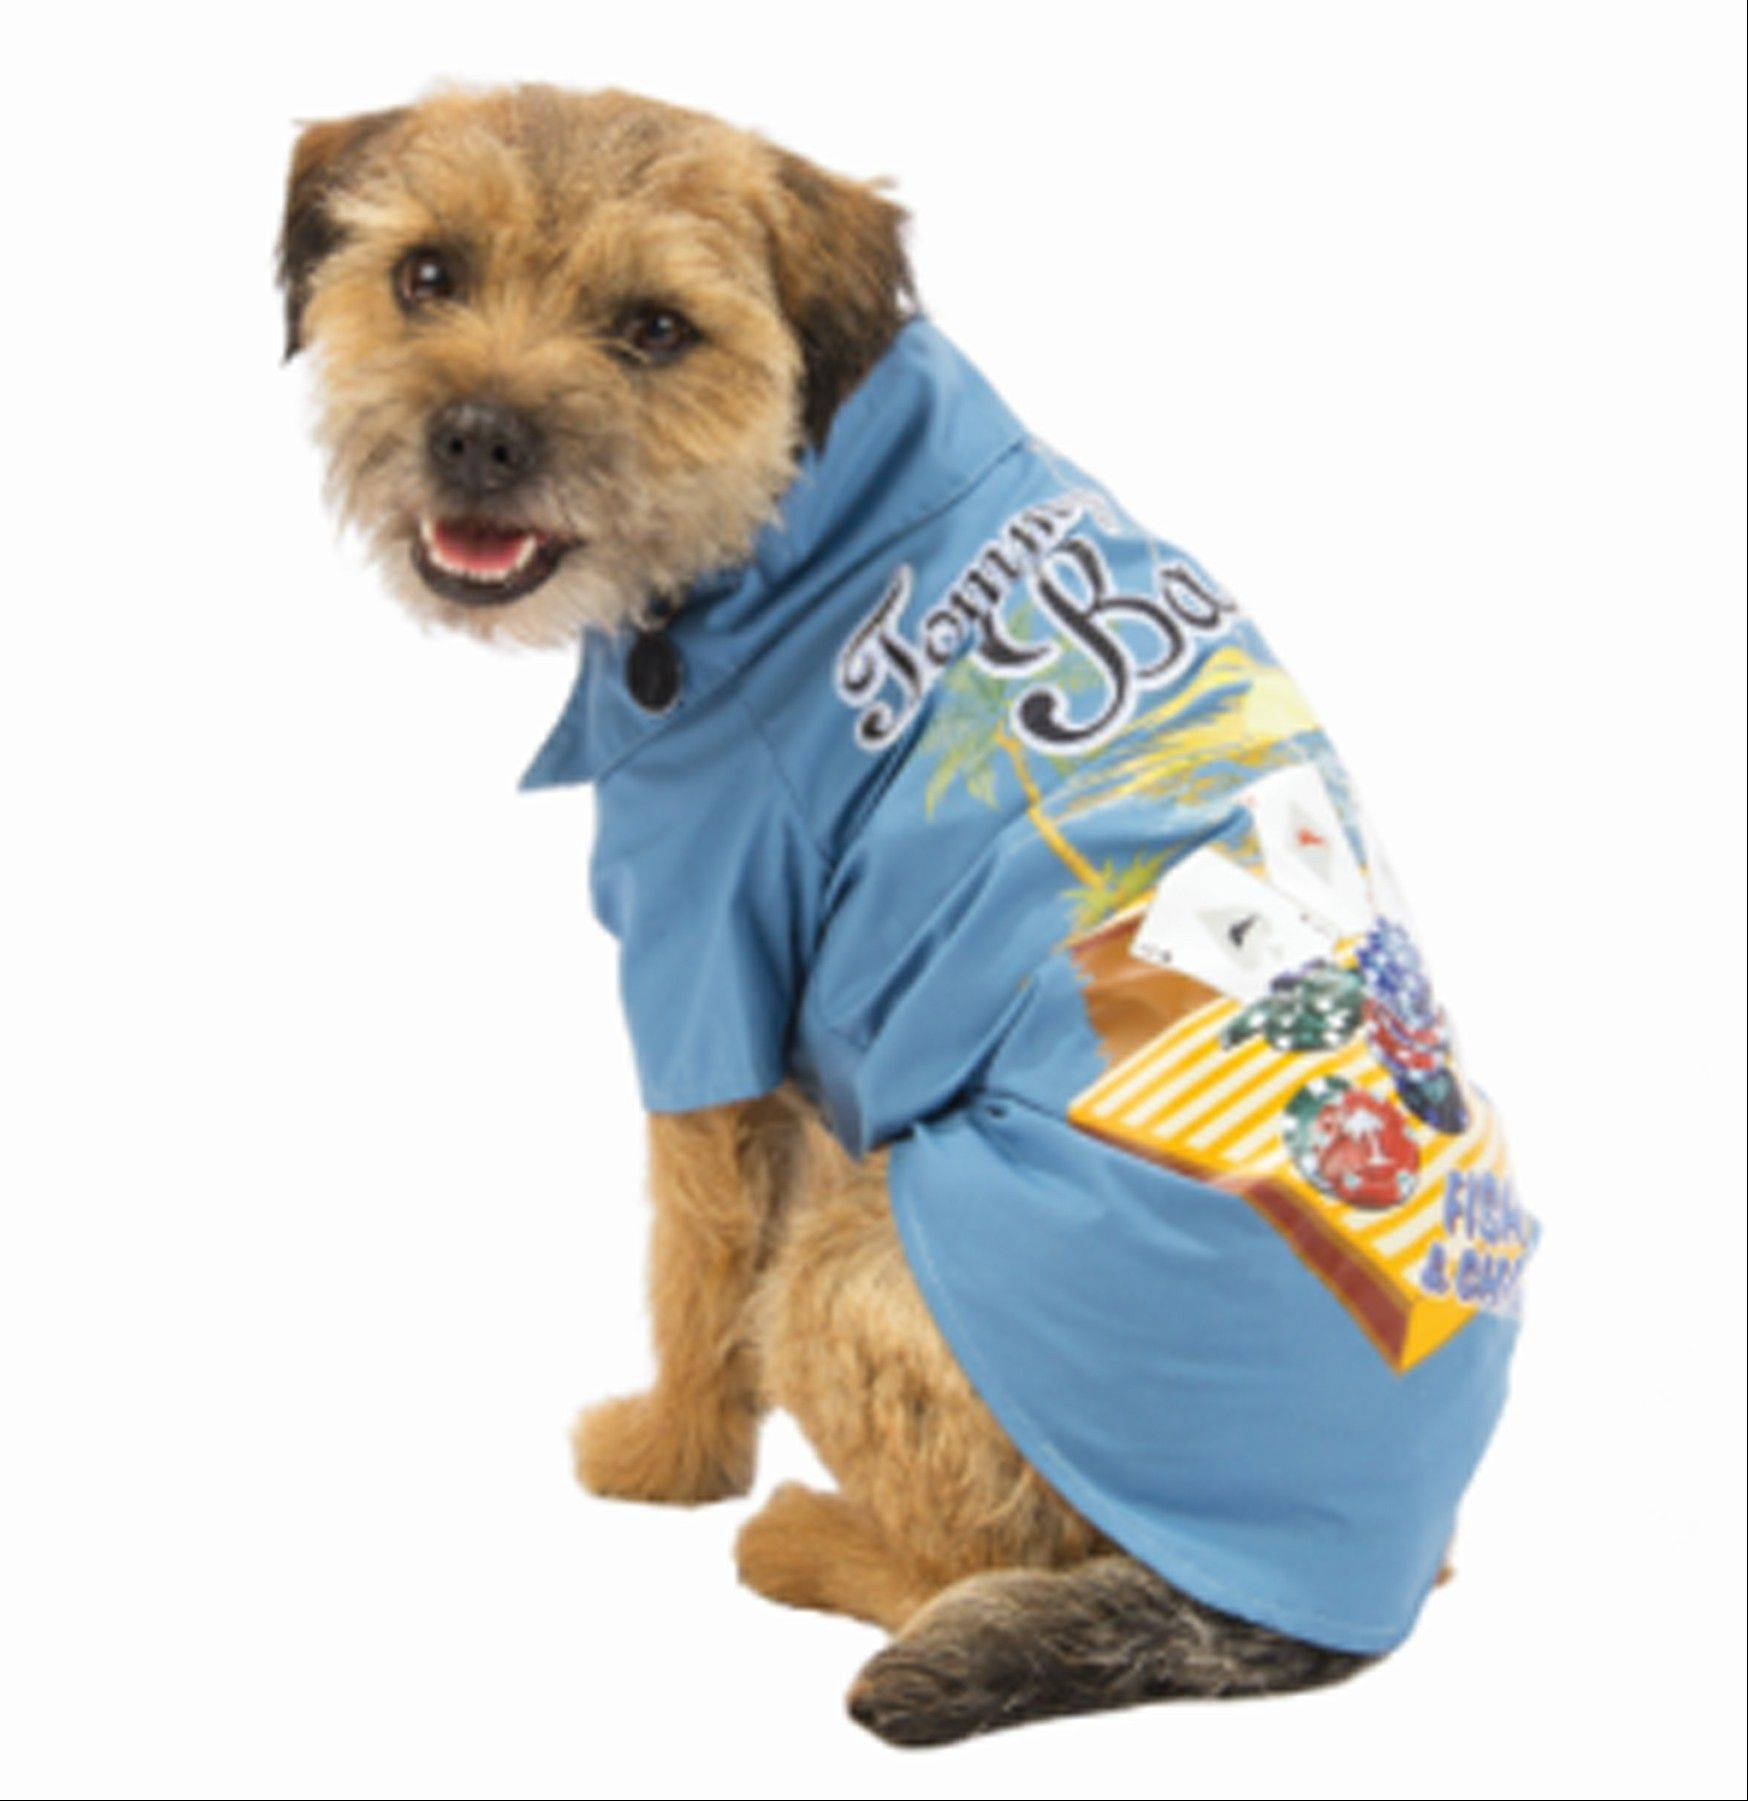 Tommy Bahama Pets will be in PetSmart Inc. stores through August. There�s a designer shirt and a dress with a ruffled skirt made with Bahama�s traditional hibiscus fabric. There are other shirts with palm trees and fish and chips, an Aloha Tee, hats and toys in the shape of thongs.